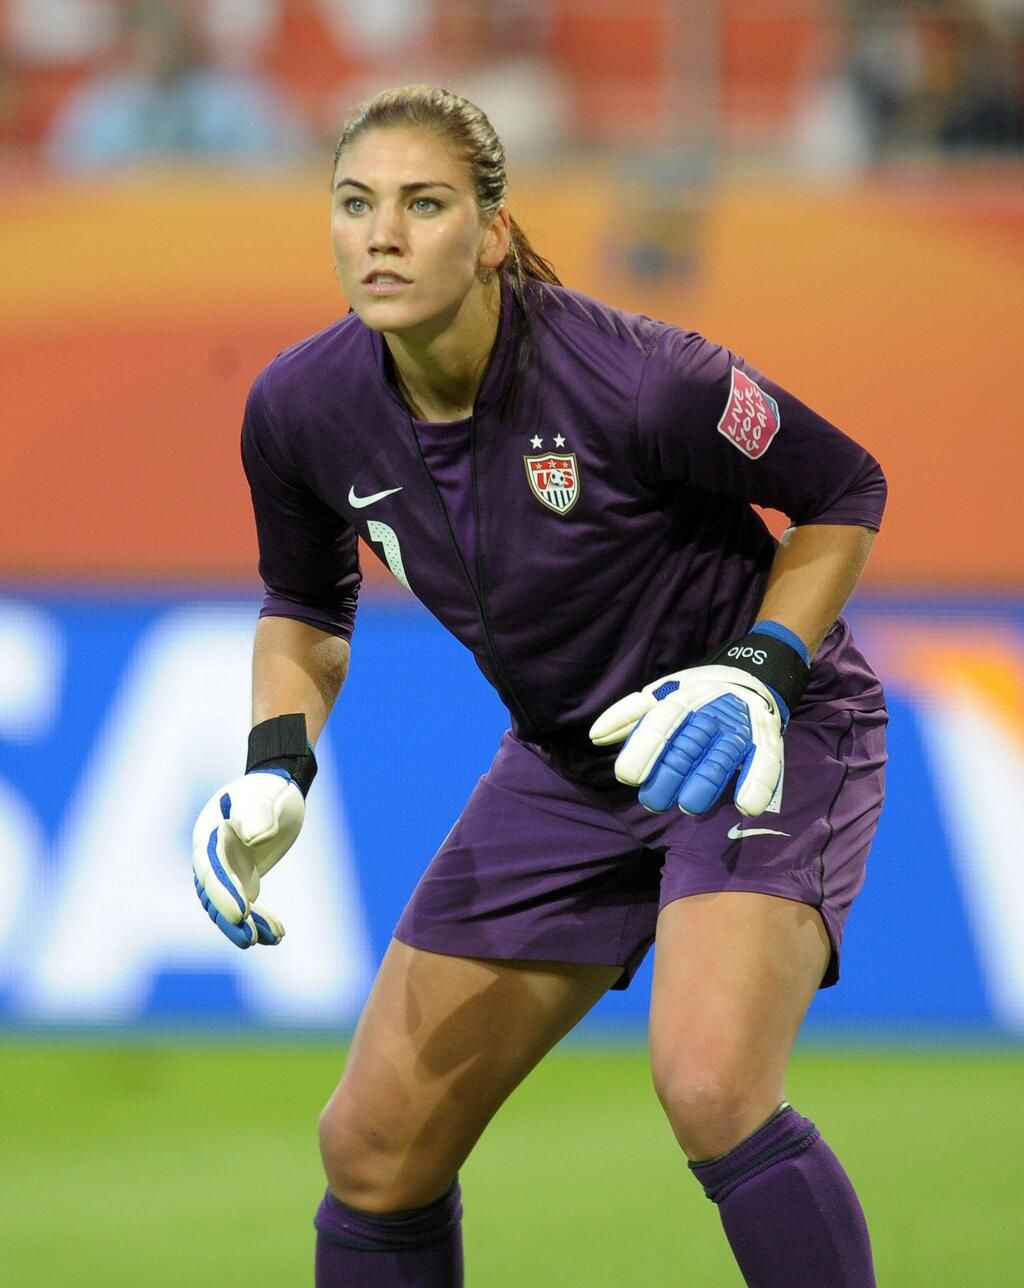 Meet the Women of Team USA   Hope solo, Athletic women, Soccer